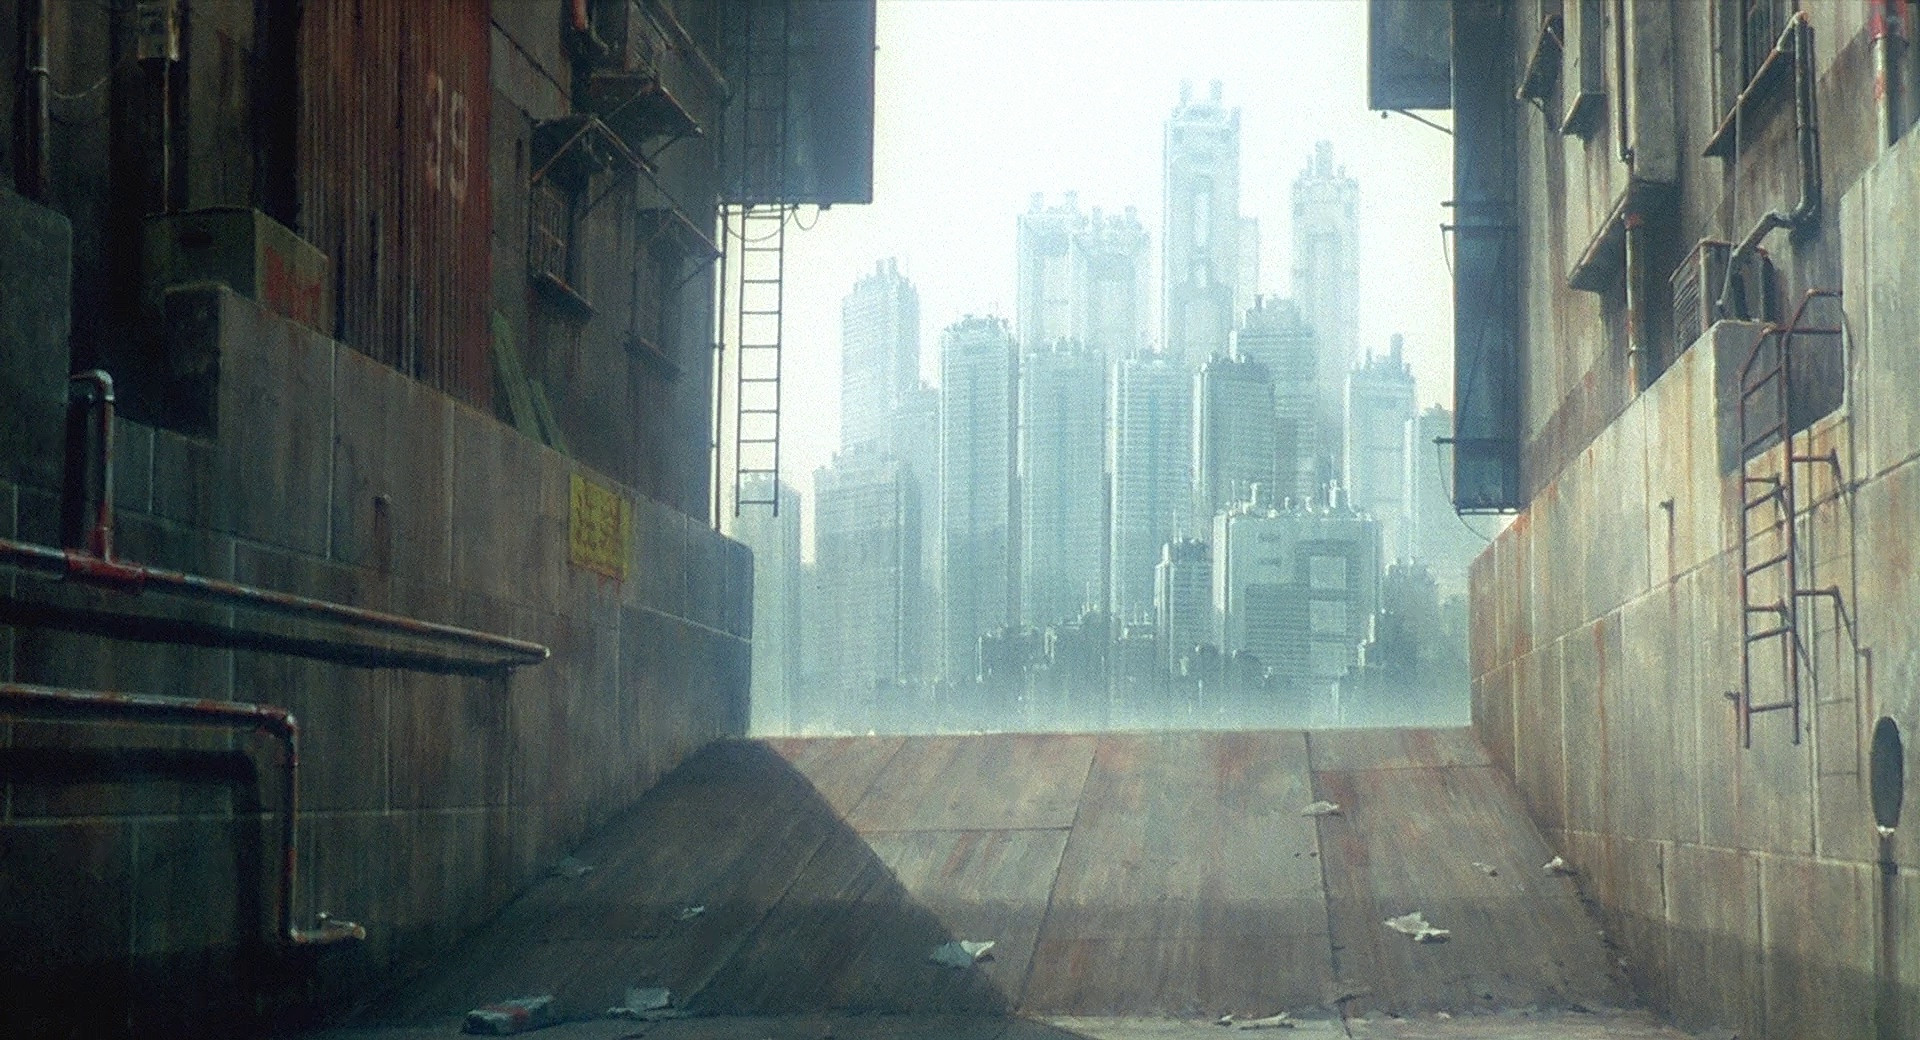 Ghost In The Shell Cityscapes That Made The Film A Masterpiece